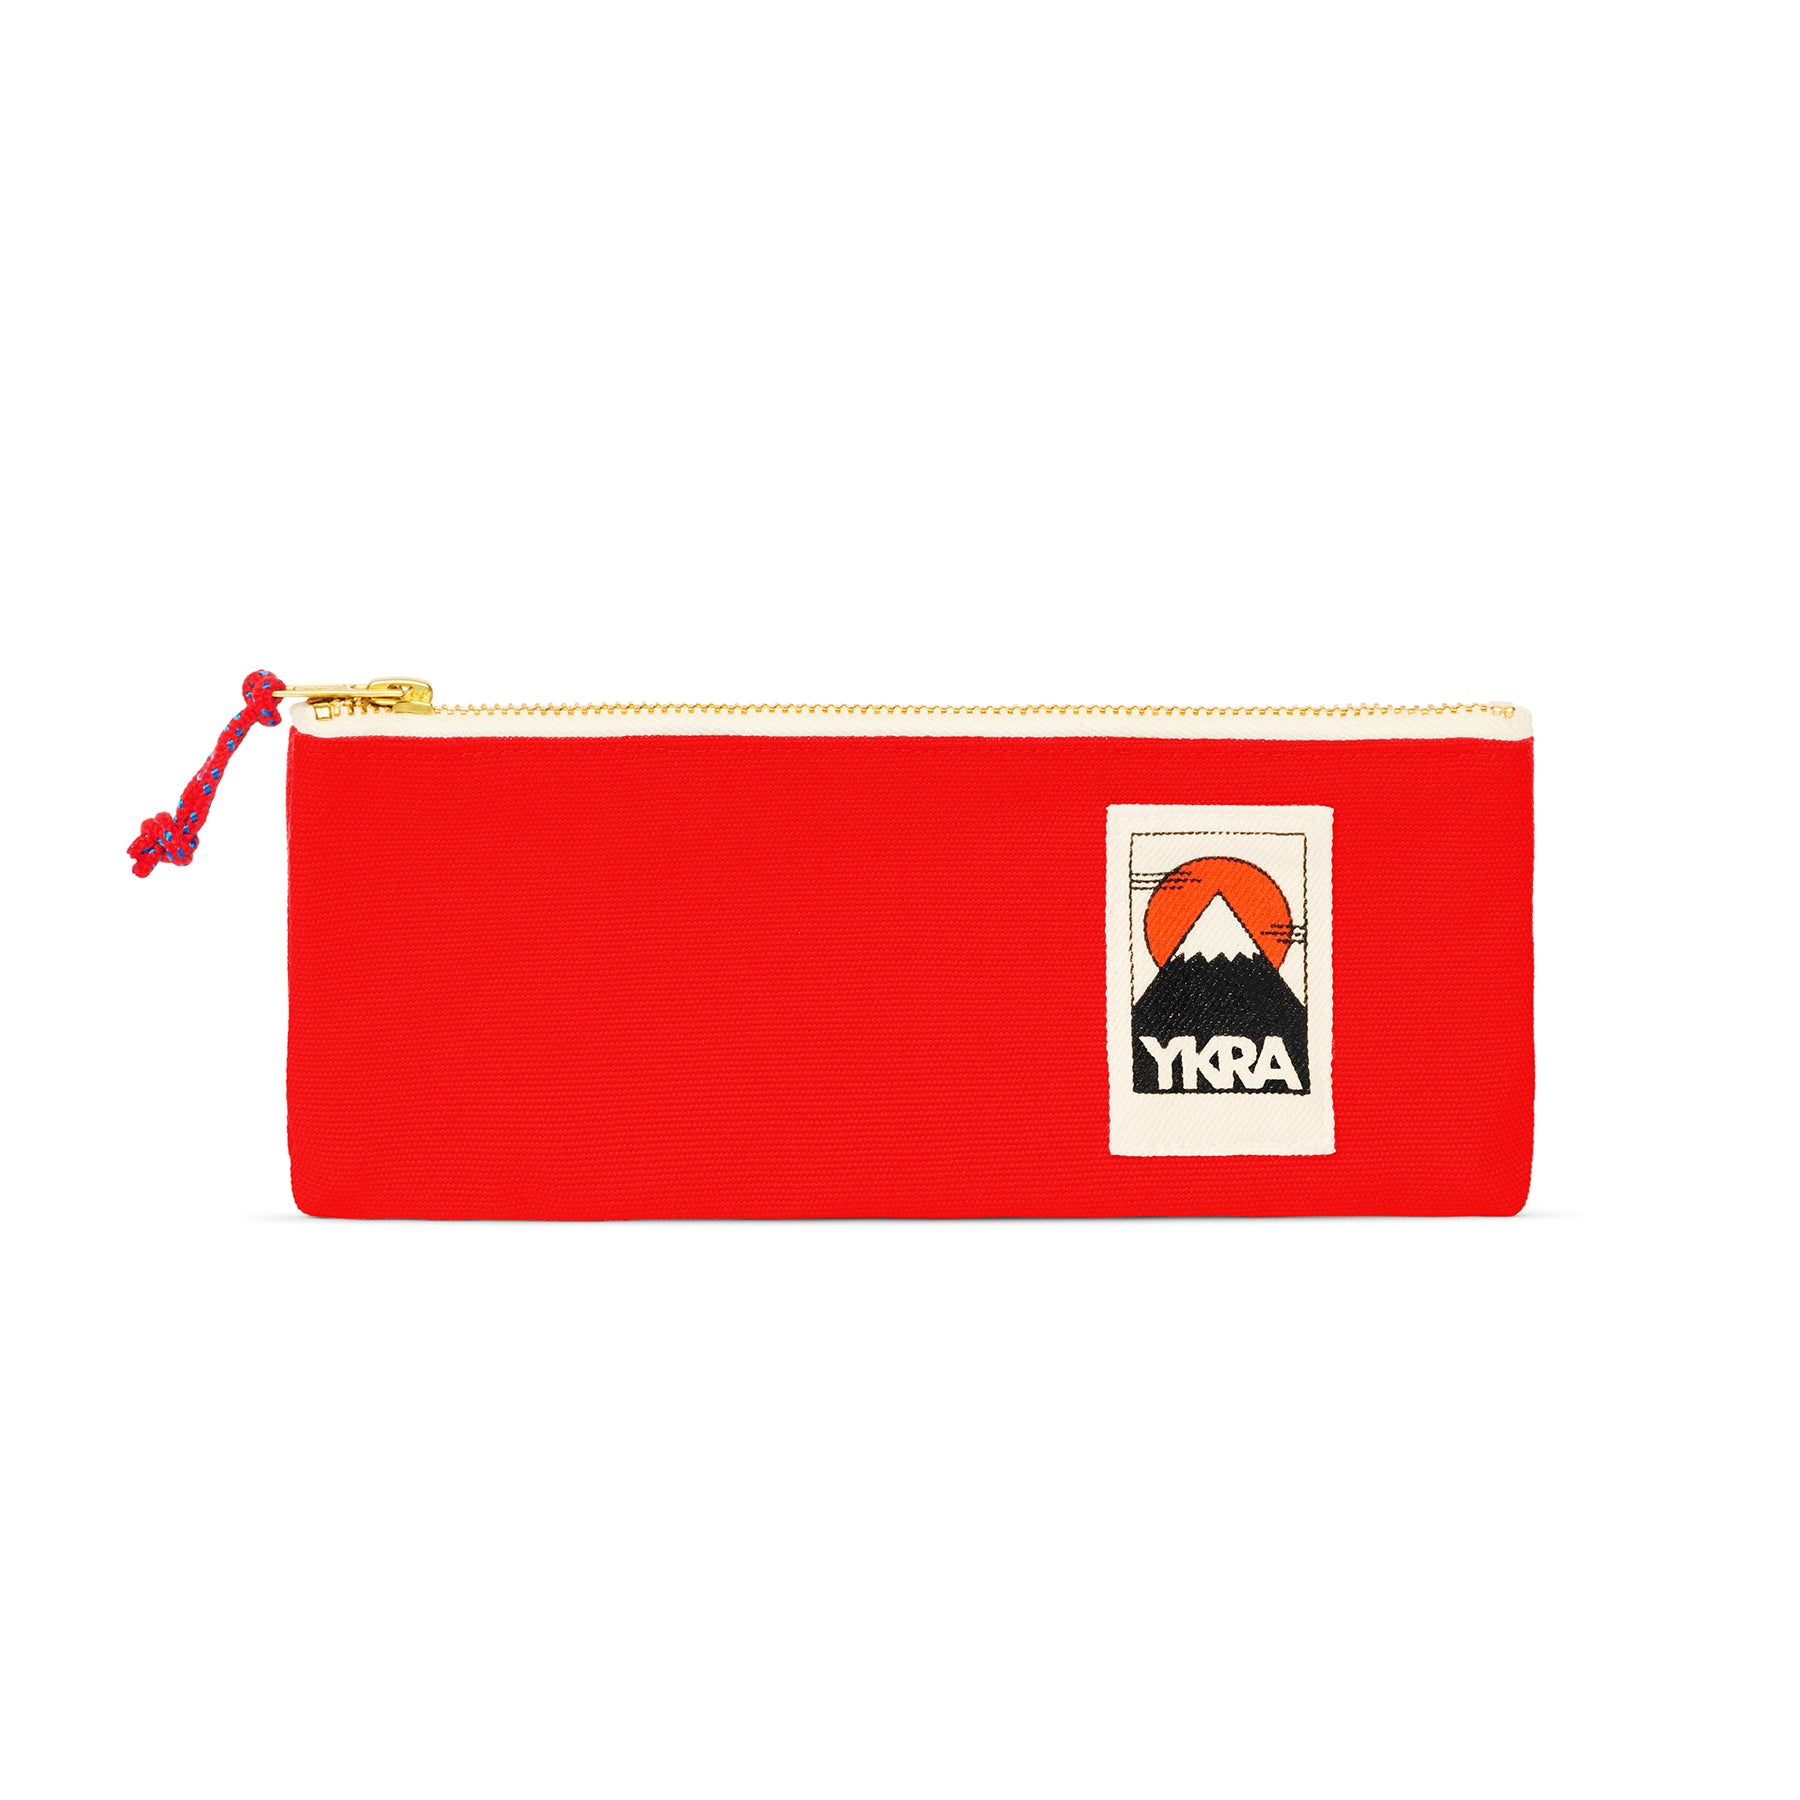 PENCILCASE - RED - YKRA